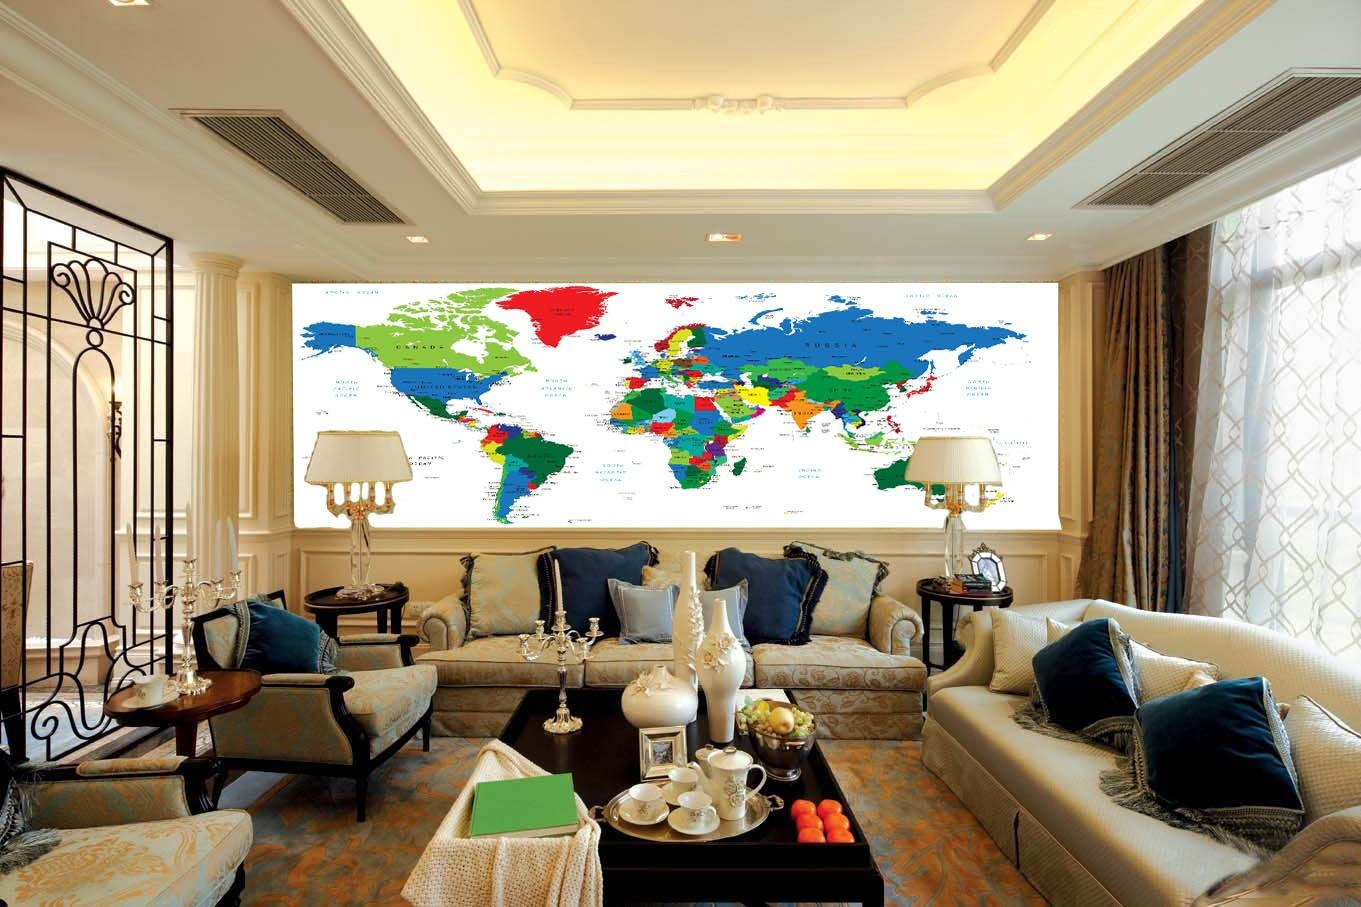 Colored World Map Wallpaper AJ Wallpaper